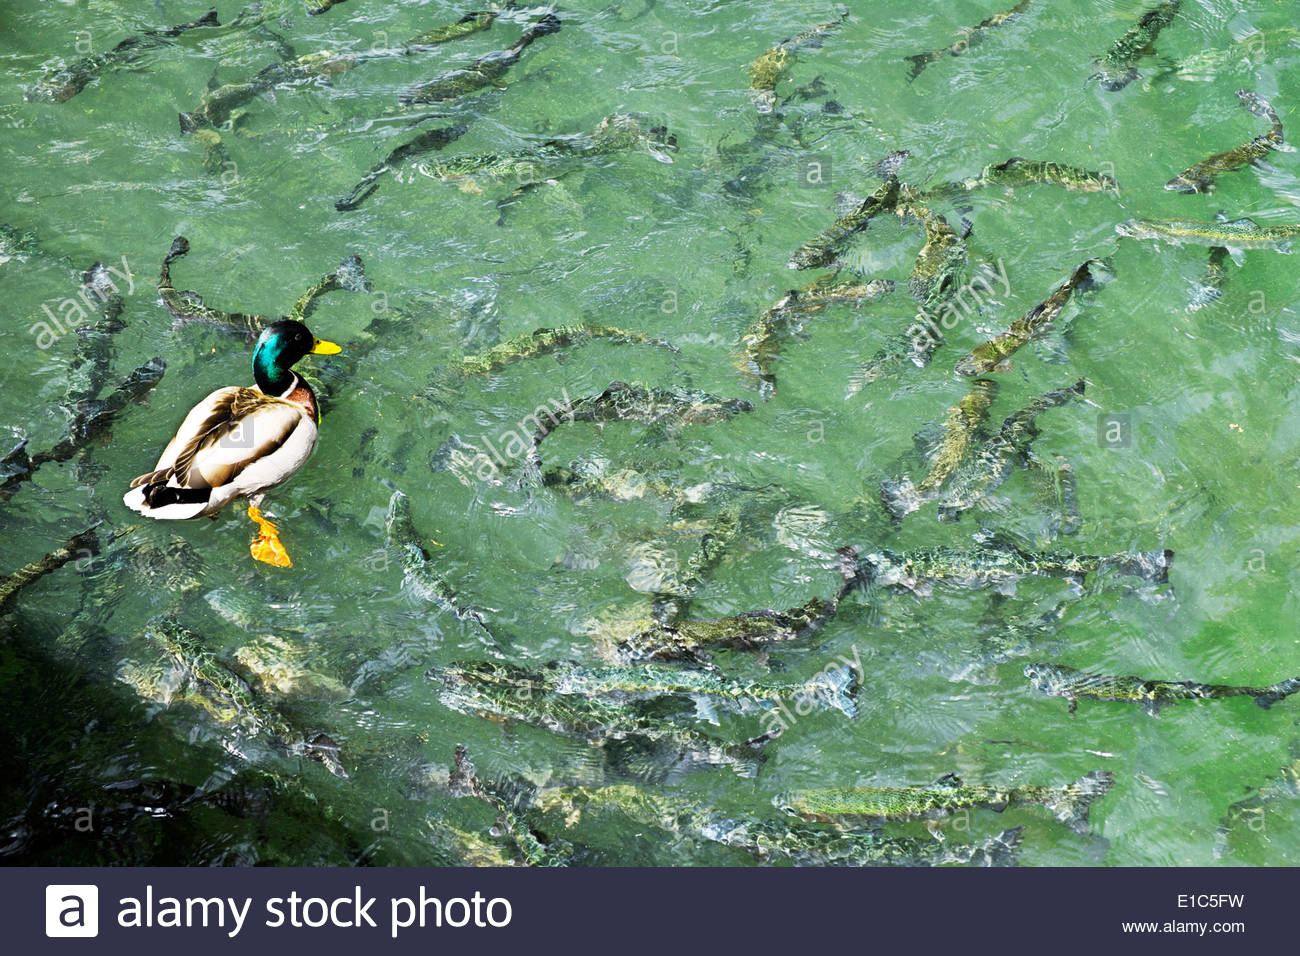 Mallard duck swims above trout in the pond at Mespelbrunn Castle, Germany. Stock Photo